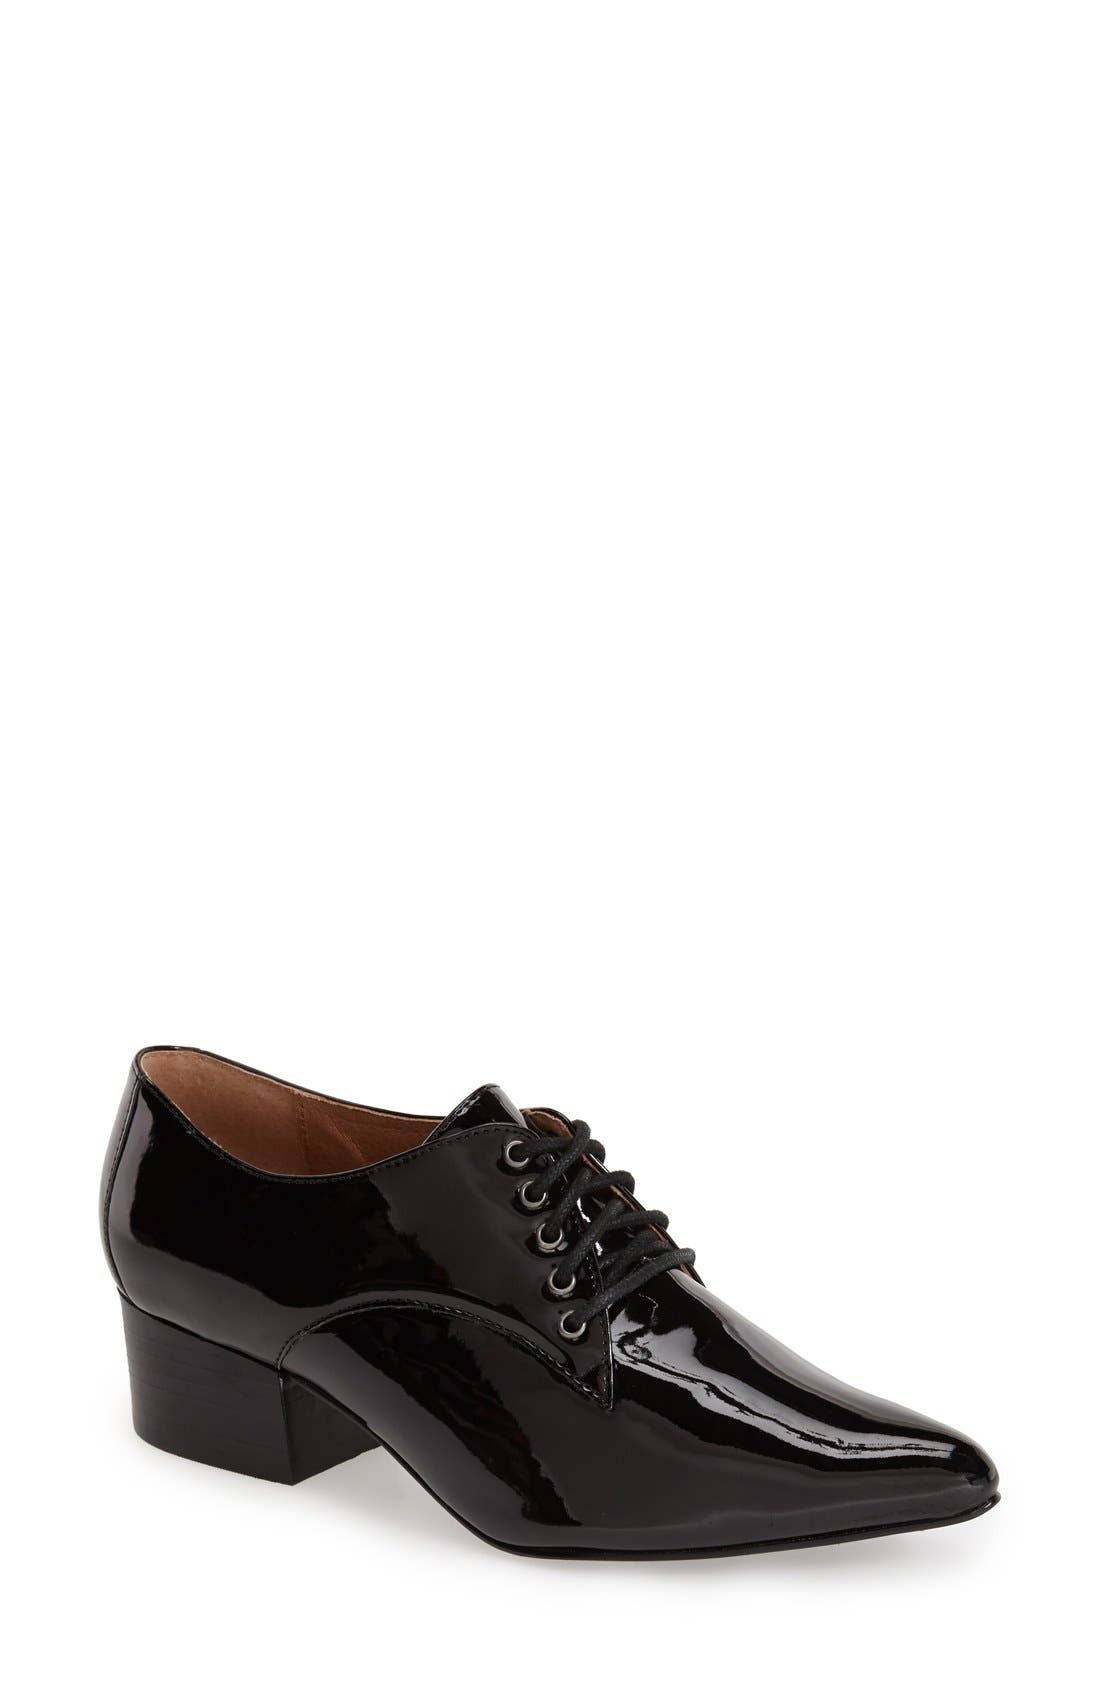 Main Image - Bettye by Bettye Muller 'Quart' Pointy Toe Oxford (Women)